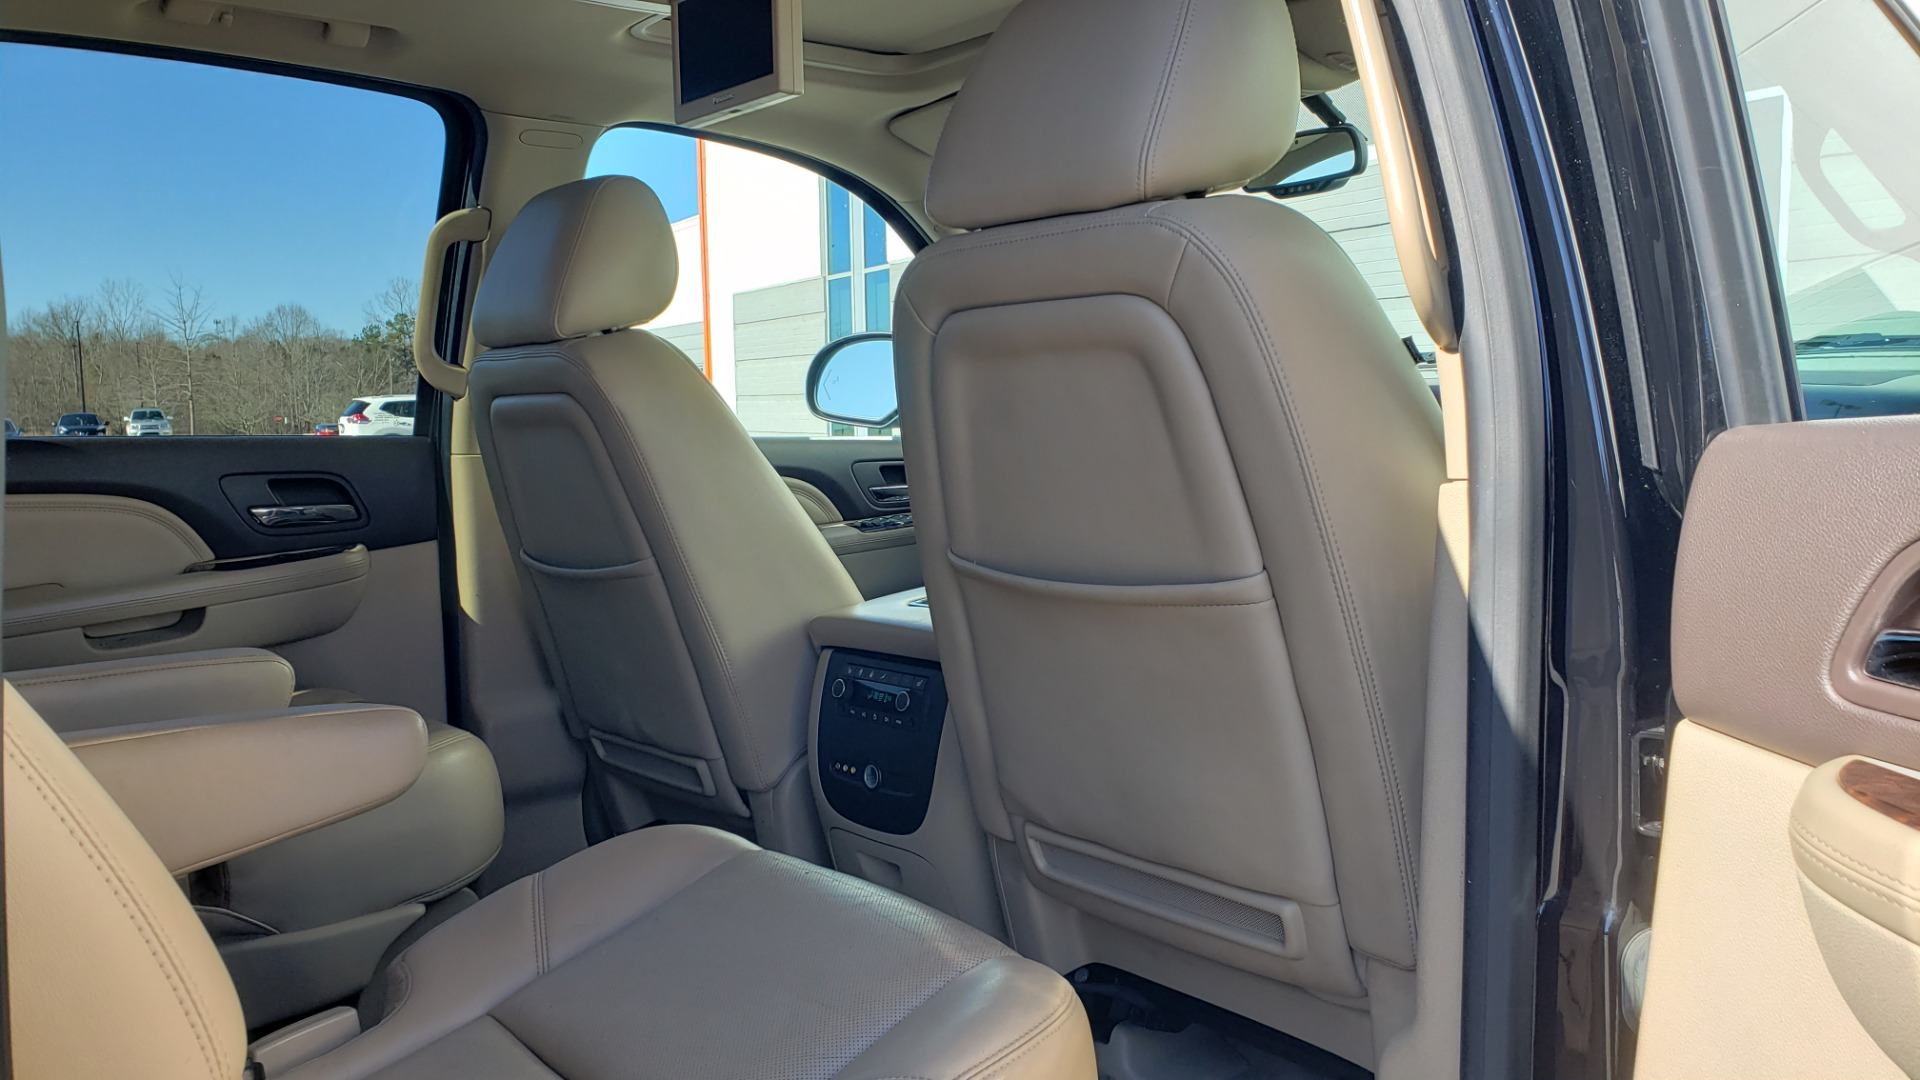 Used 2013 GMC YUKON XL DENALI / AWD / NAV / SUNROOF / 3-ROW / ENTERTAINMENT for sale Sold at Formula Imports in Charlotte NC 28227 72